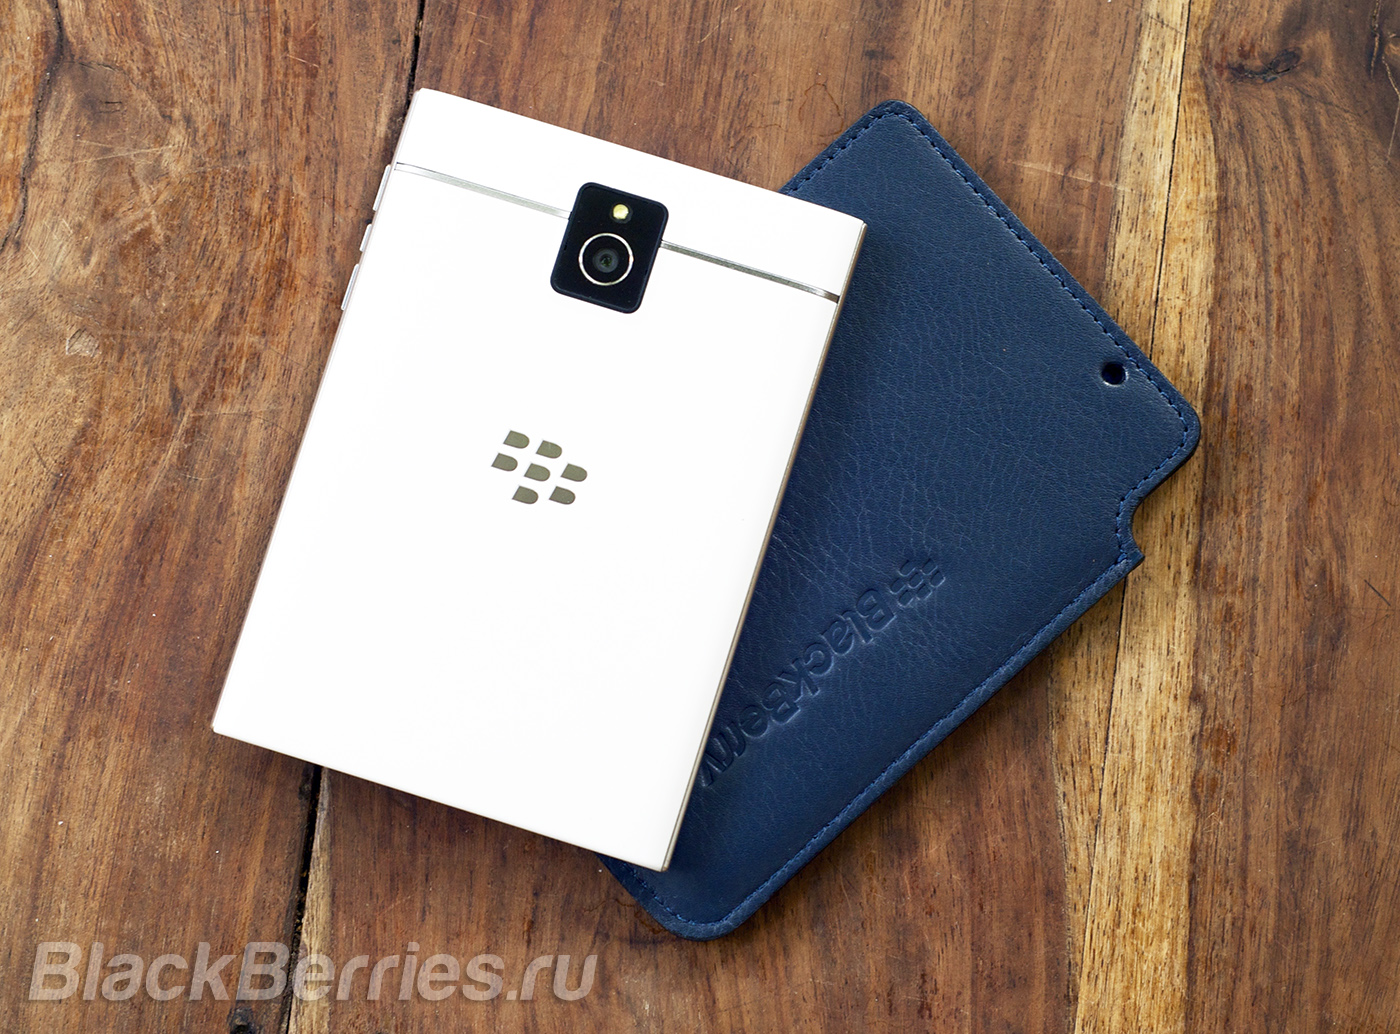 BlackBerry-Passport-Case-01